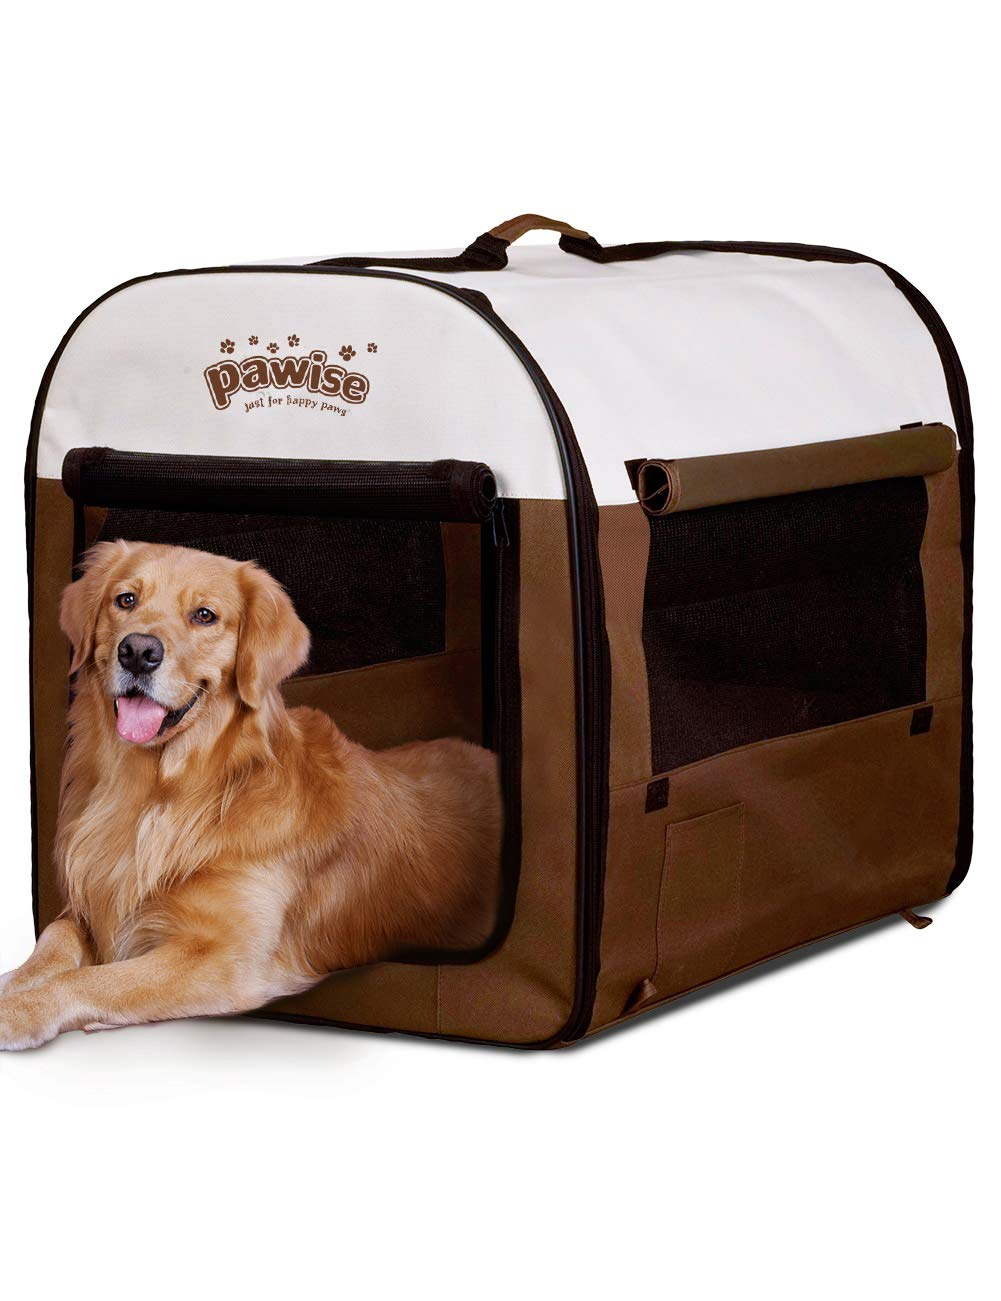 PAWISE Folding Soft Dog Crate Pet Kennel Houses Pens Indoor & Outdoor (Large) by PAWISE